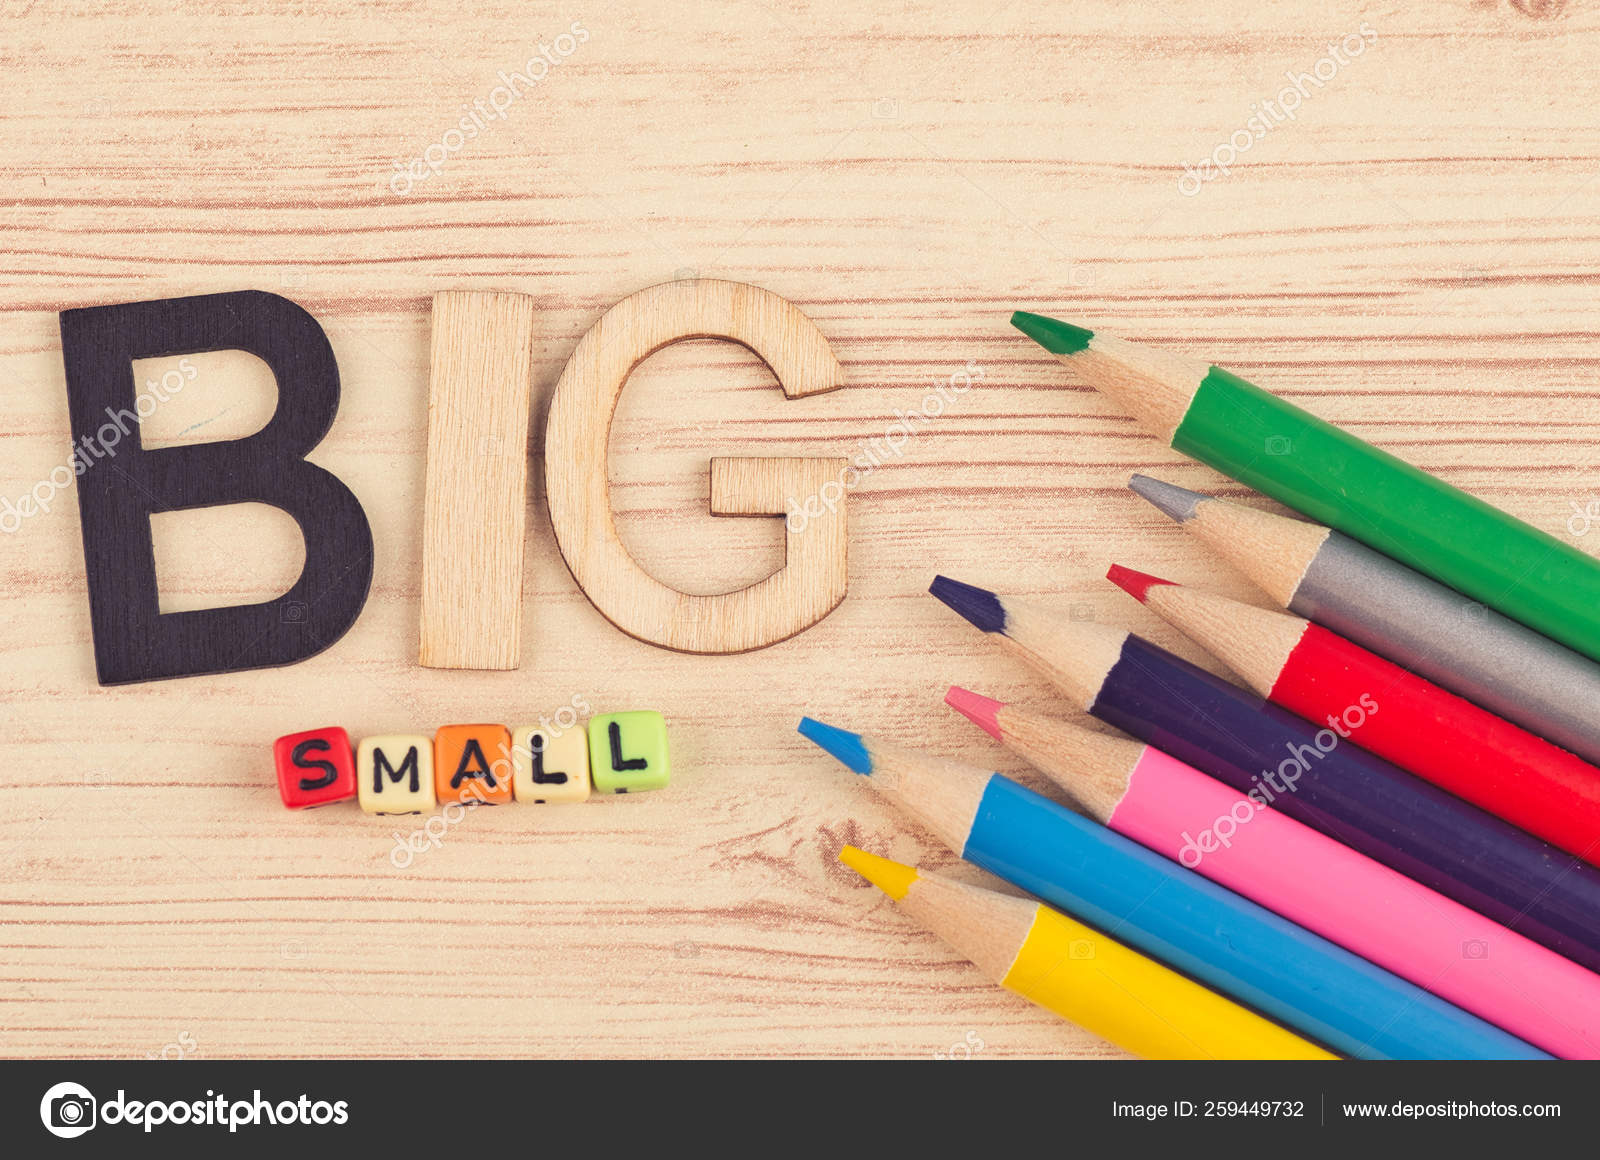 Business Concept Colorful Pencils And Word Big Small On Wooden